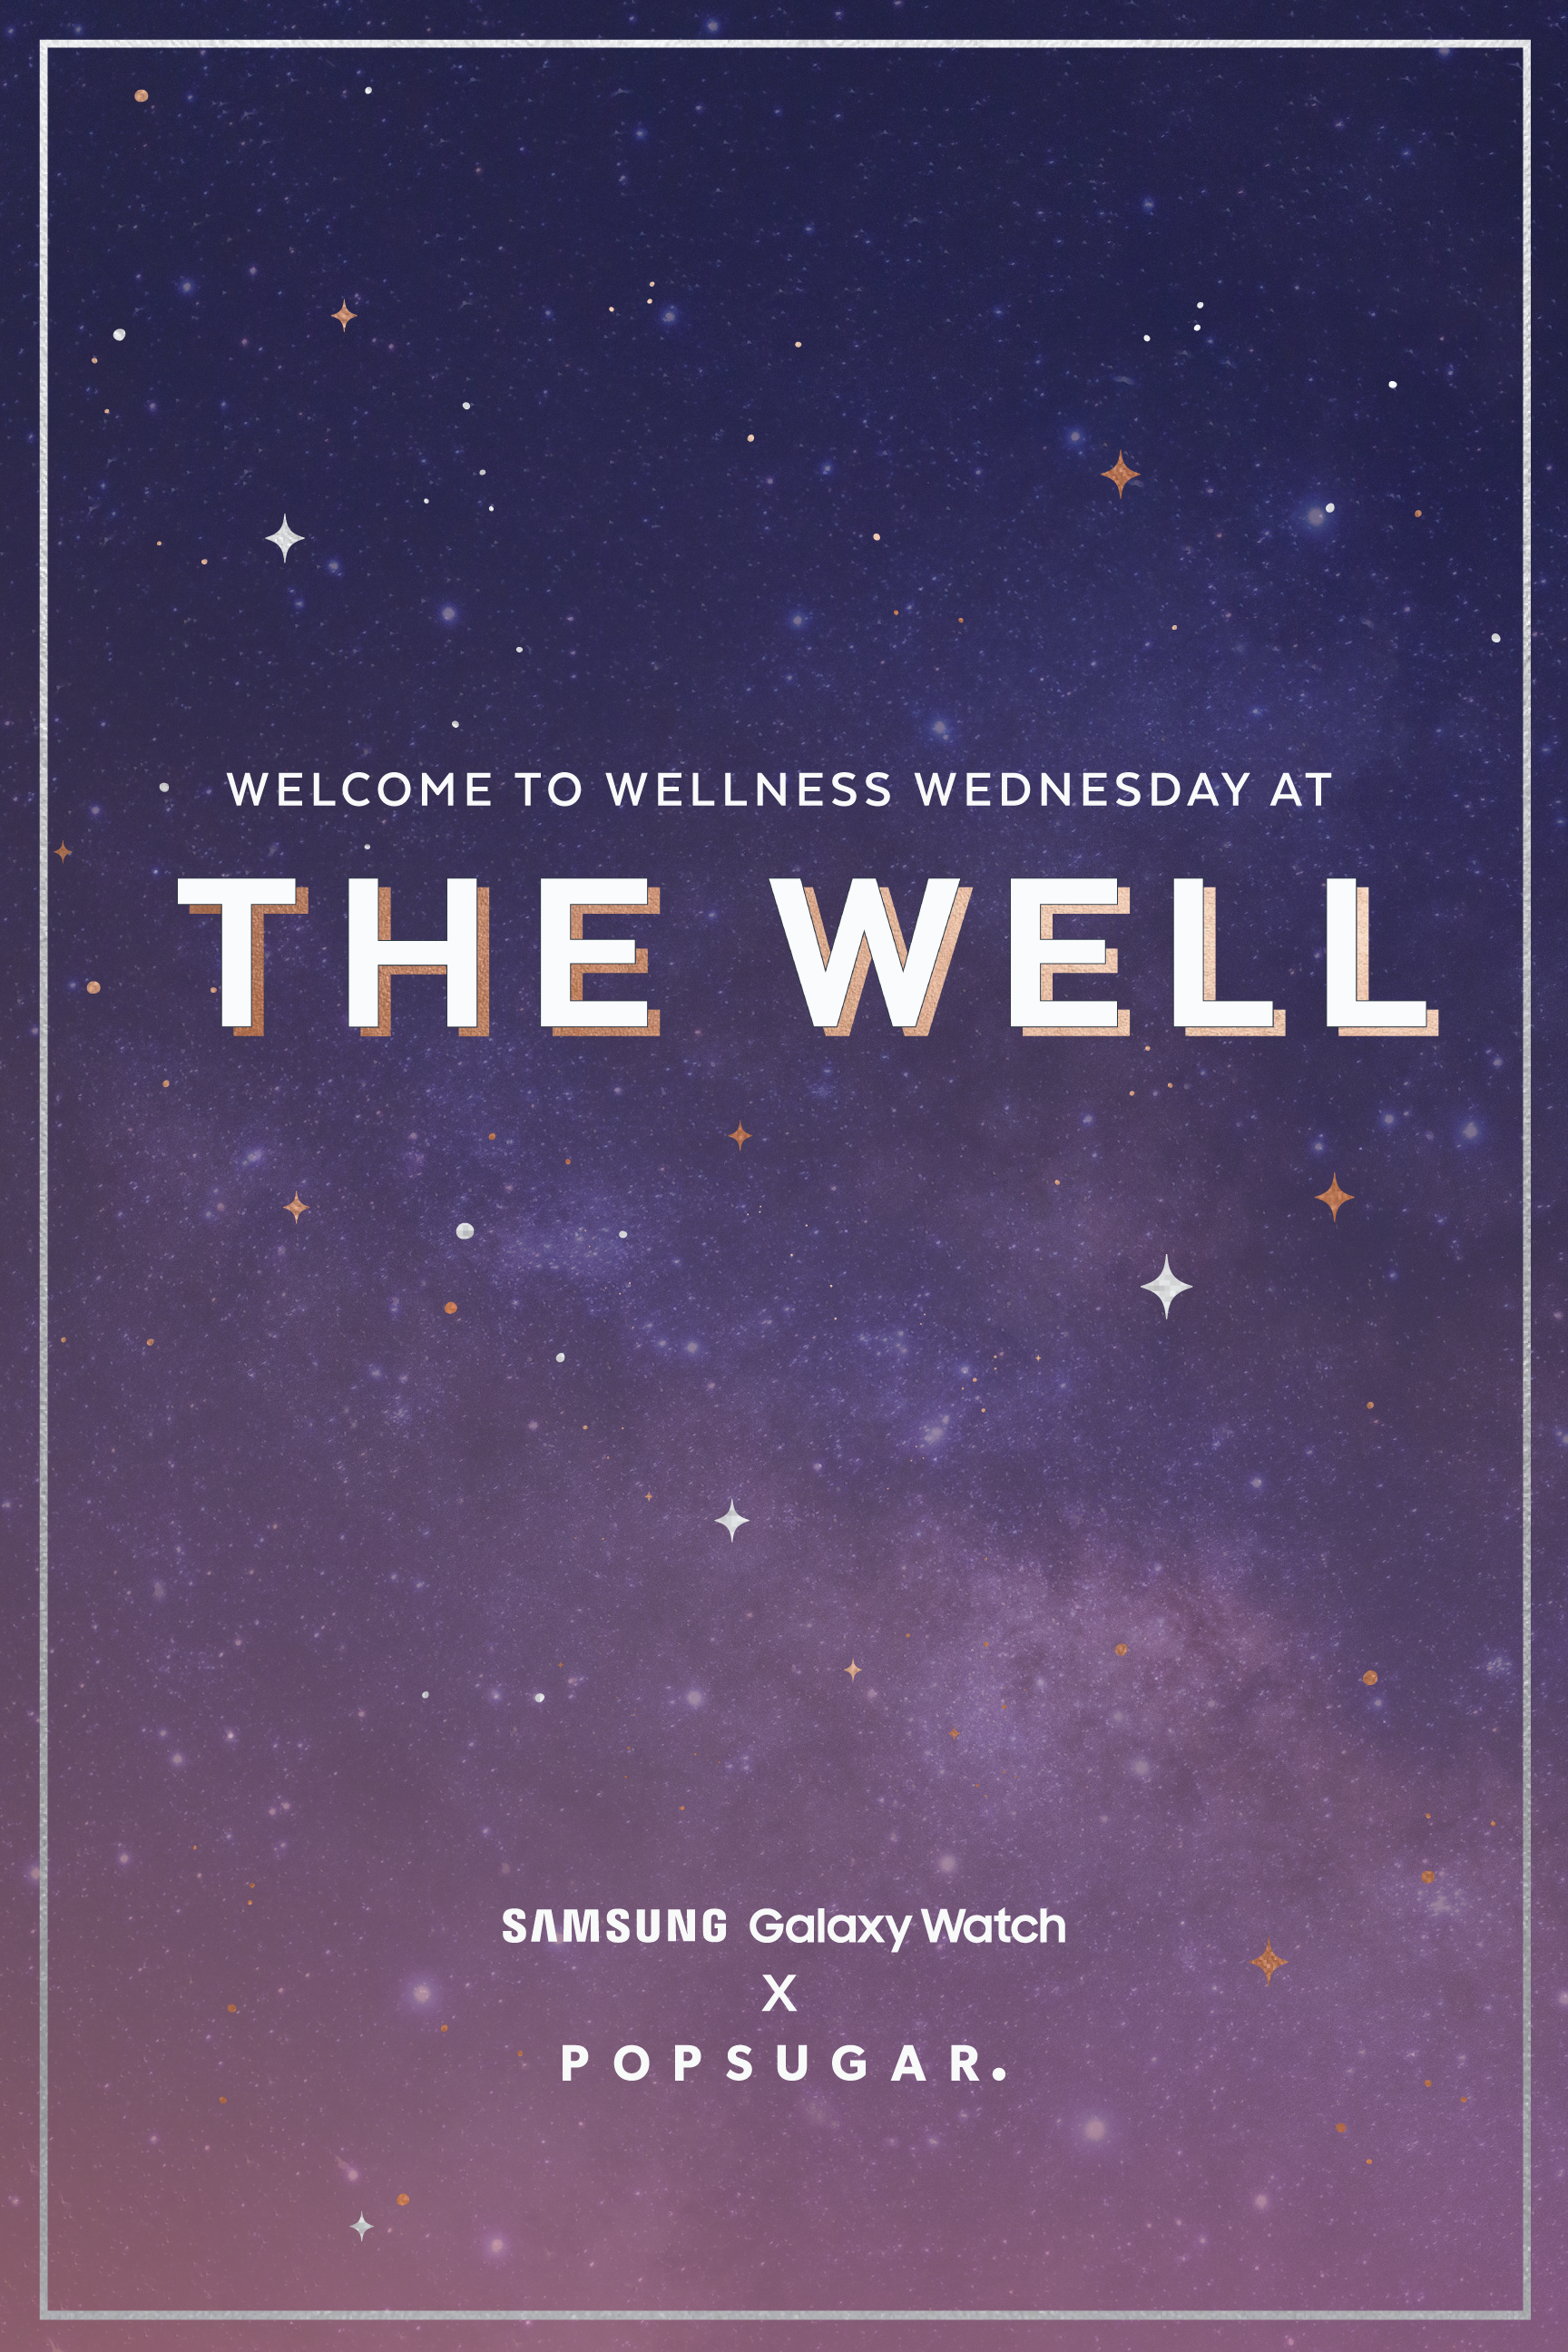 PS18_Samsung_TheWell_CES_Signage_Welcome-Sign_24x36.png